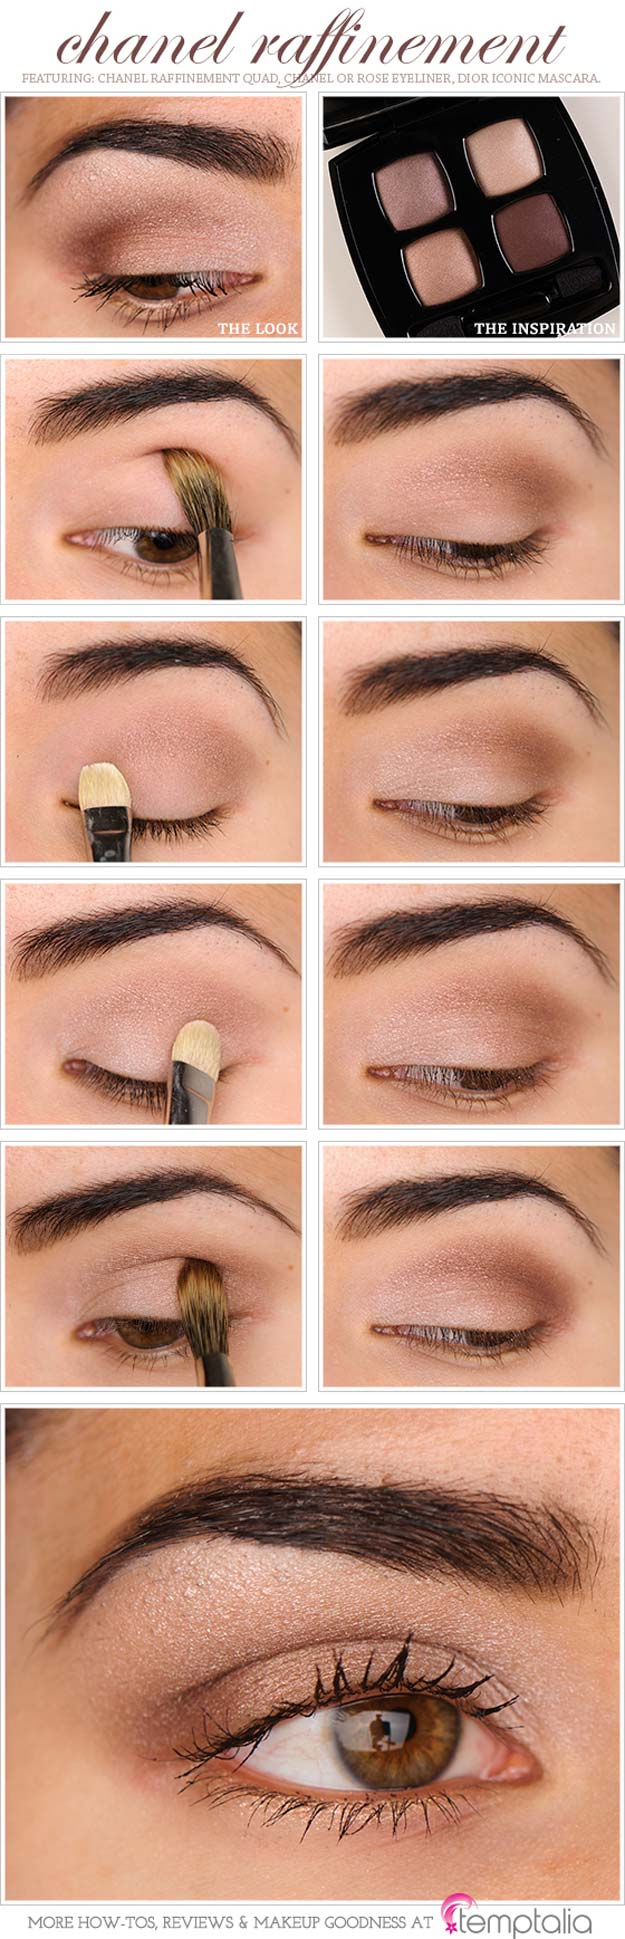 Best Eyeshadow Tutorials - Channel Refinement - Easy Step by Step How To For Eye Shadow - Cool Makeup Tricks and Eye Makeup Tutorial With Instructions - Quick Ways to Do Smoky Eye, Natural Makeup, Looks for Day and Evening, Brown and Blue Eyes - Cool Ideas for Beginners and Teens http://diyprojectsforteens.com/best-eyeshadow-tutorials